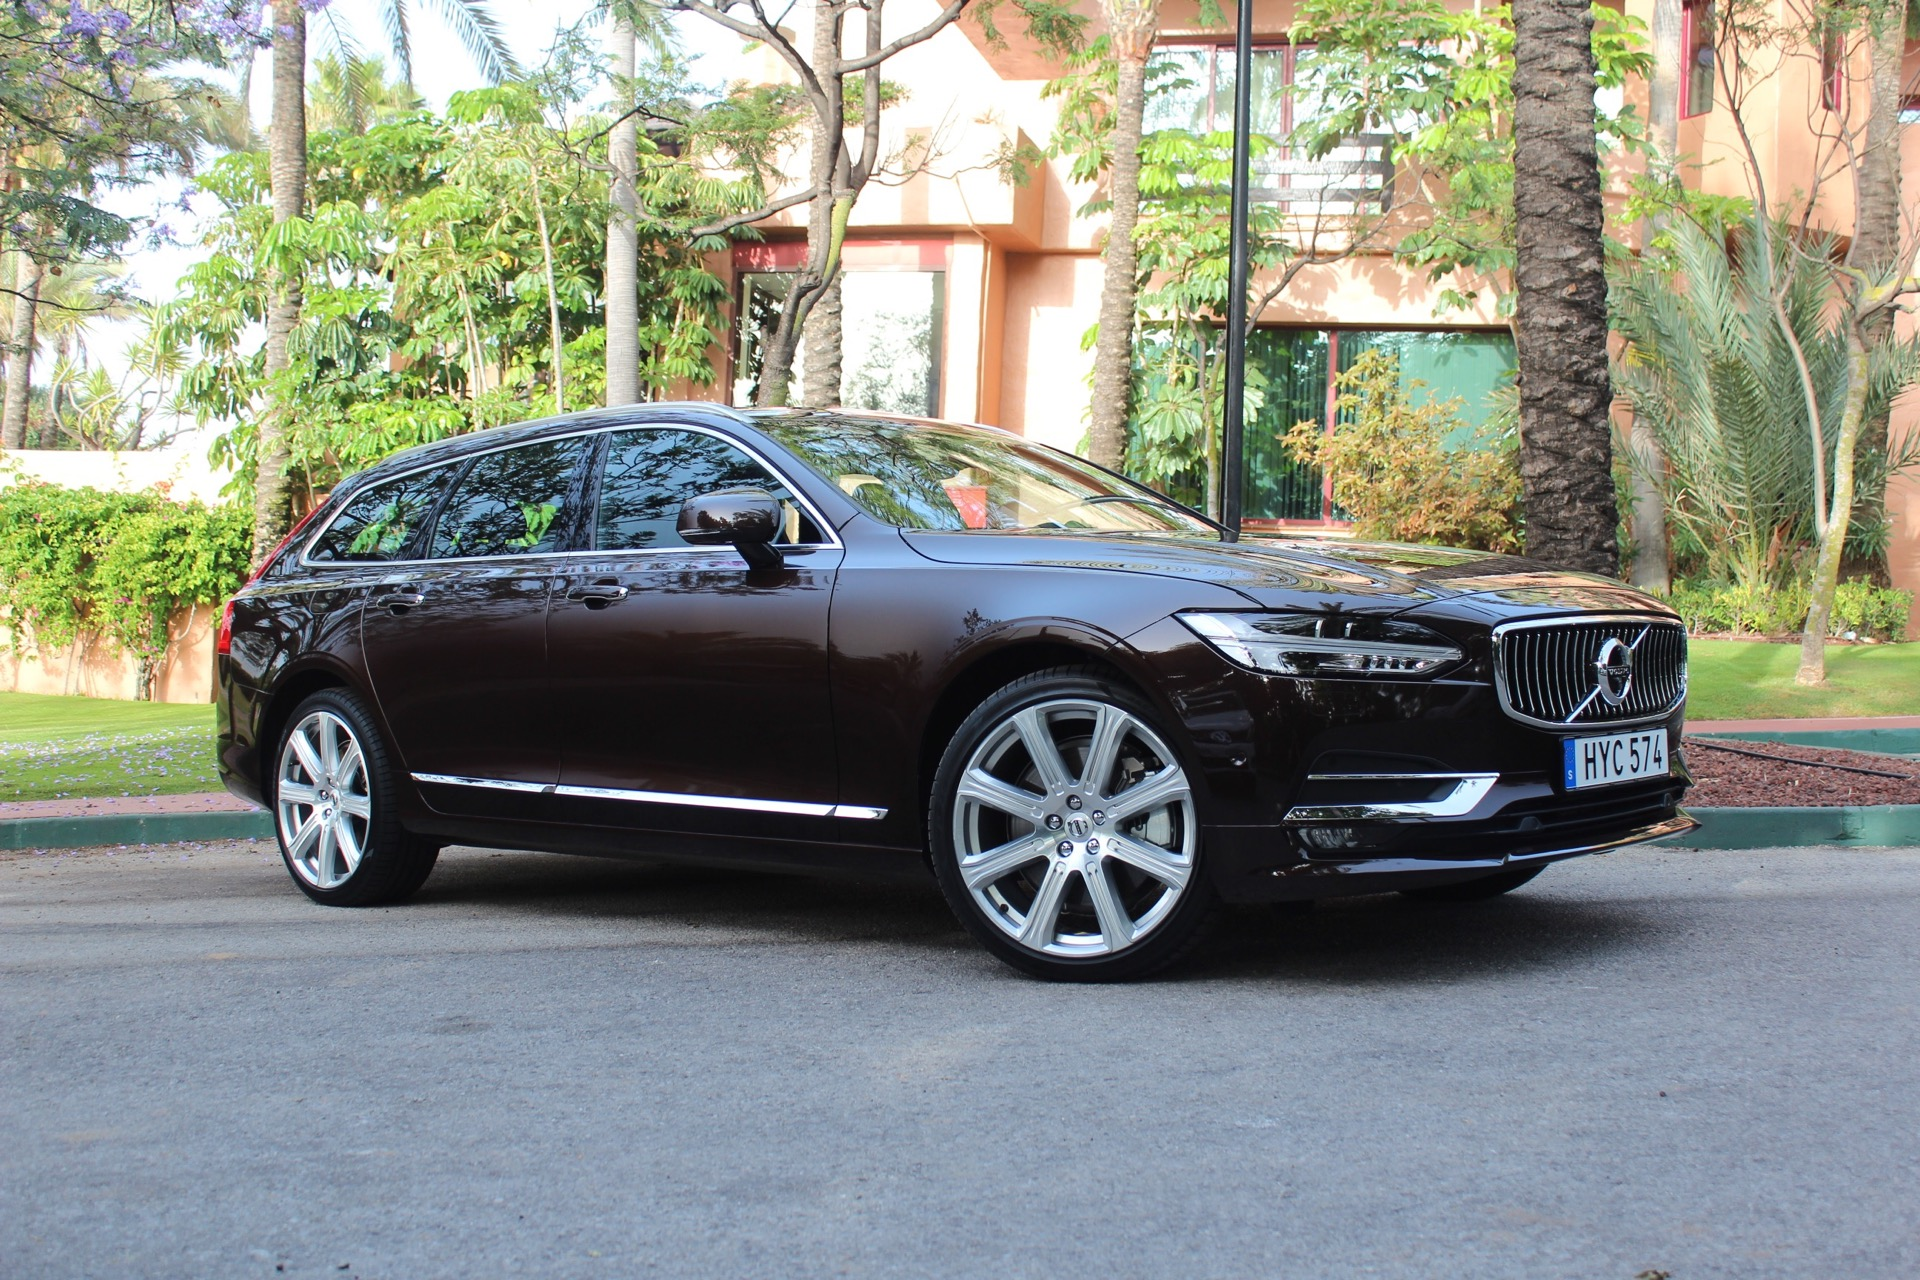 60 The Best 2020 Volvo V90 Specification Concept and Review